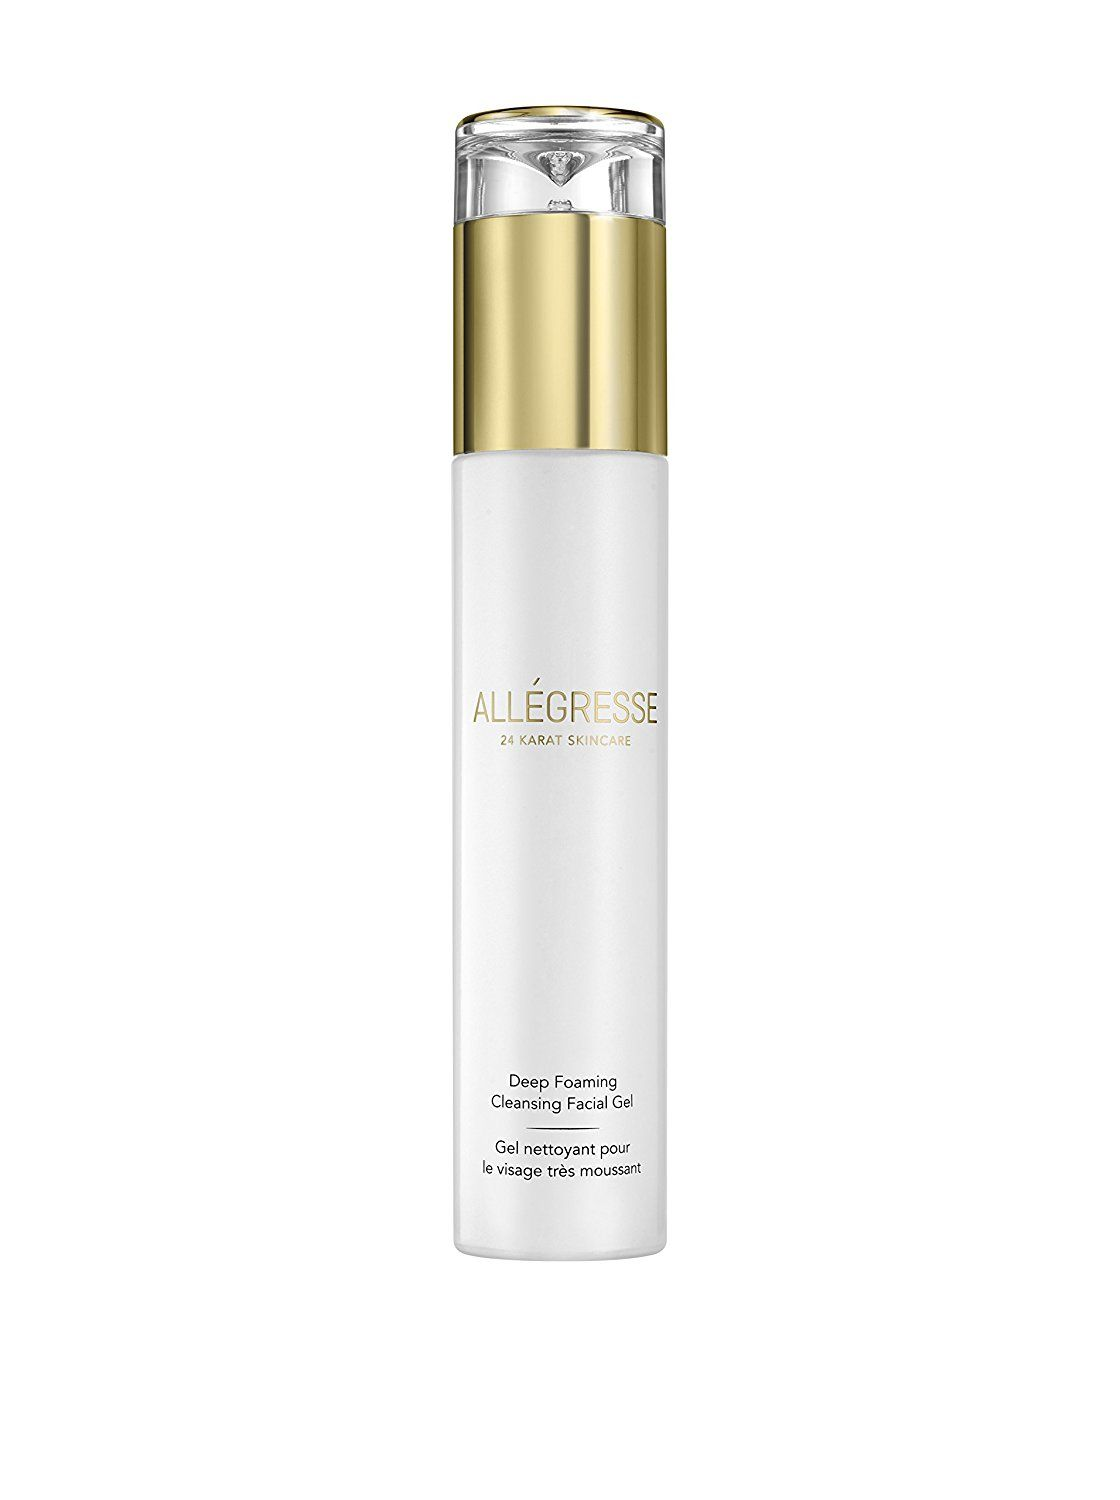 ALLEGRESSE by BIBASQUE 24K Gold Deep Foaming Cleansing Facial Gel * You can get more details by clicking on the image.